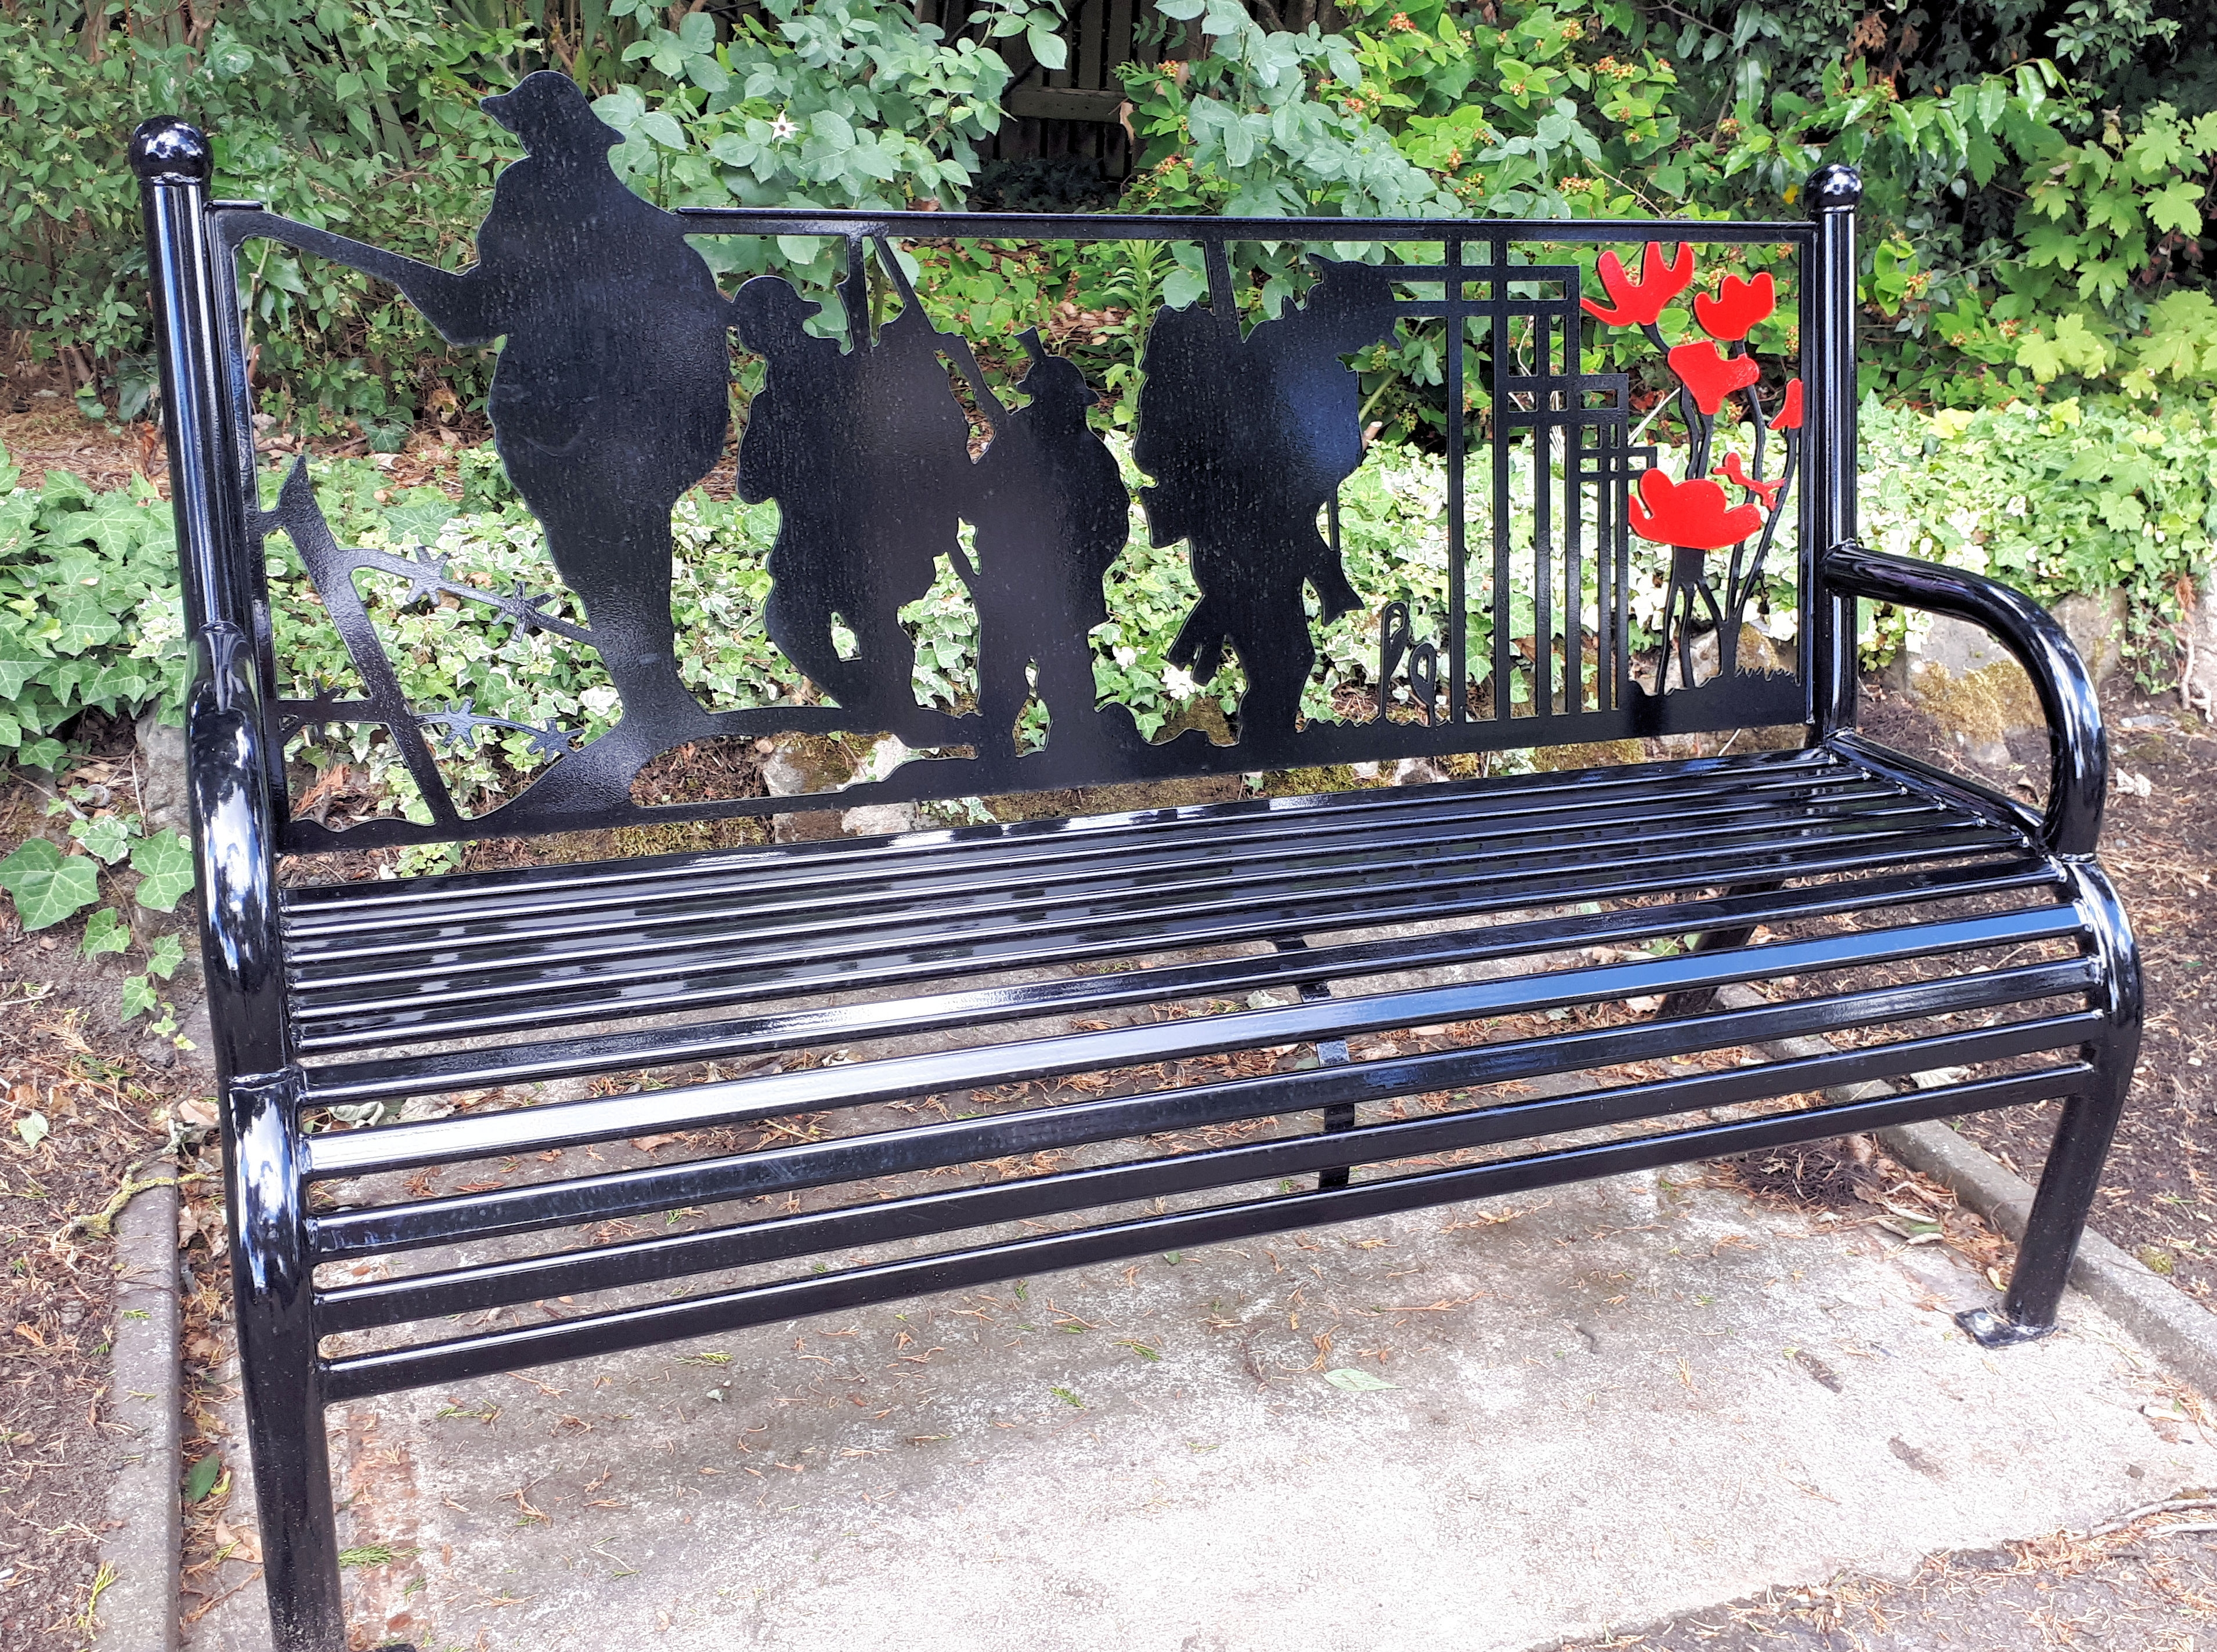 syston_bench_sept18